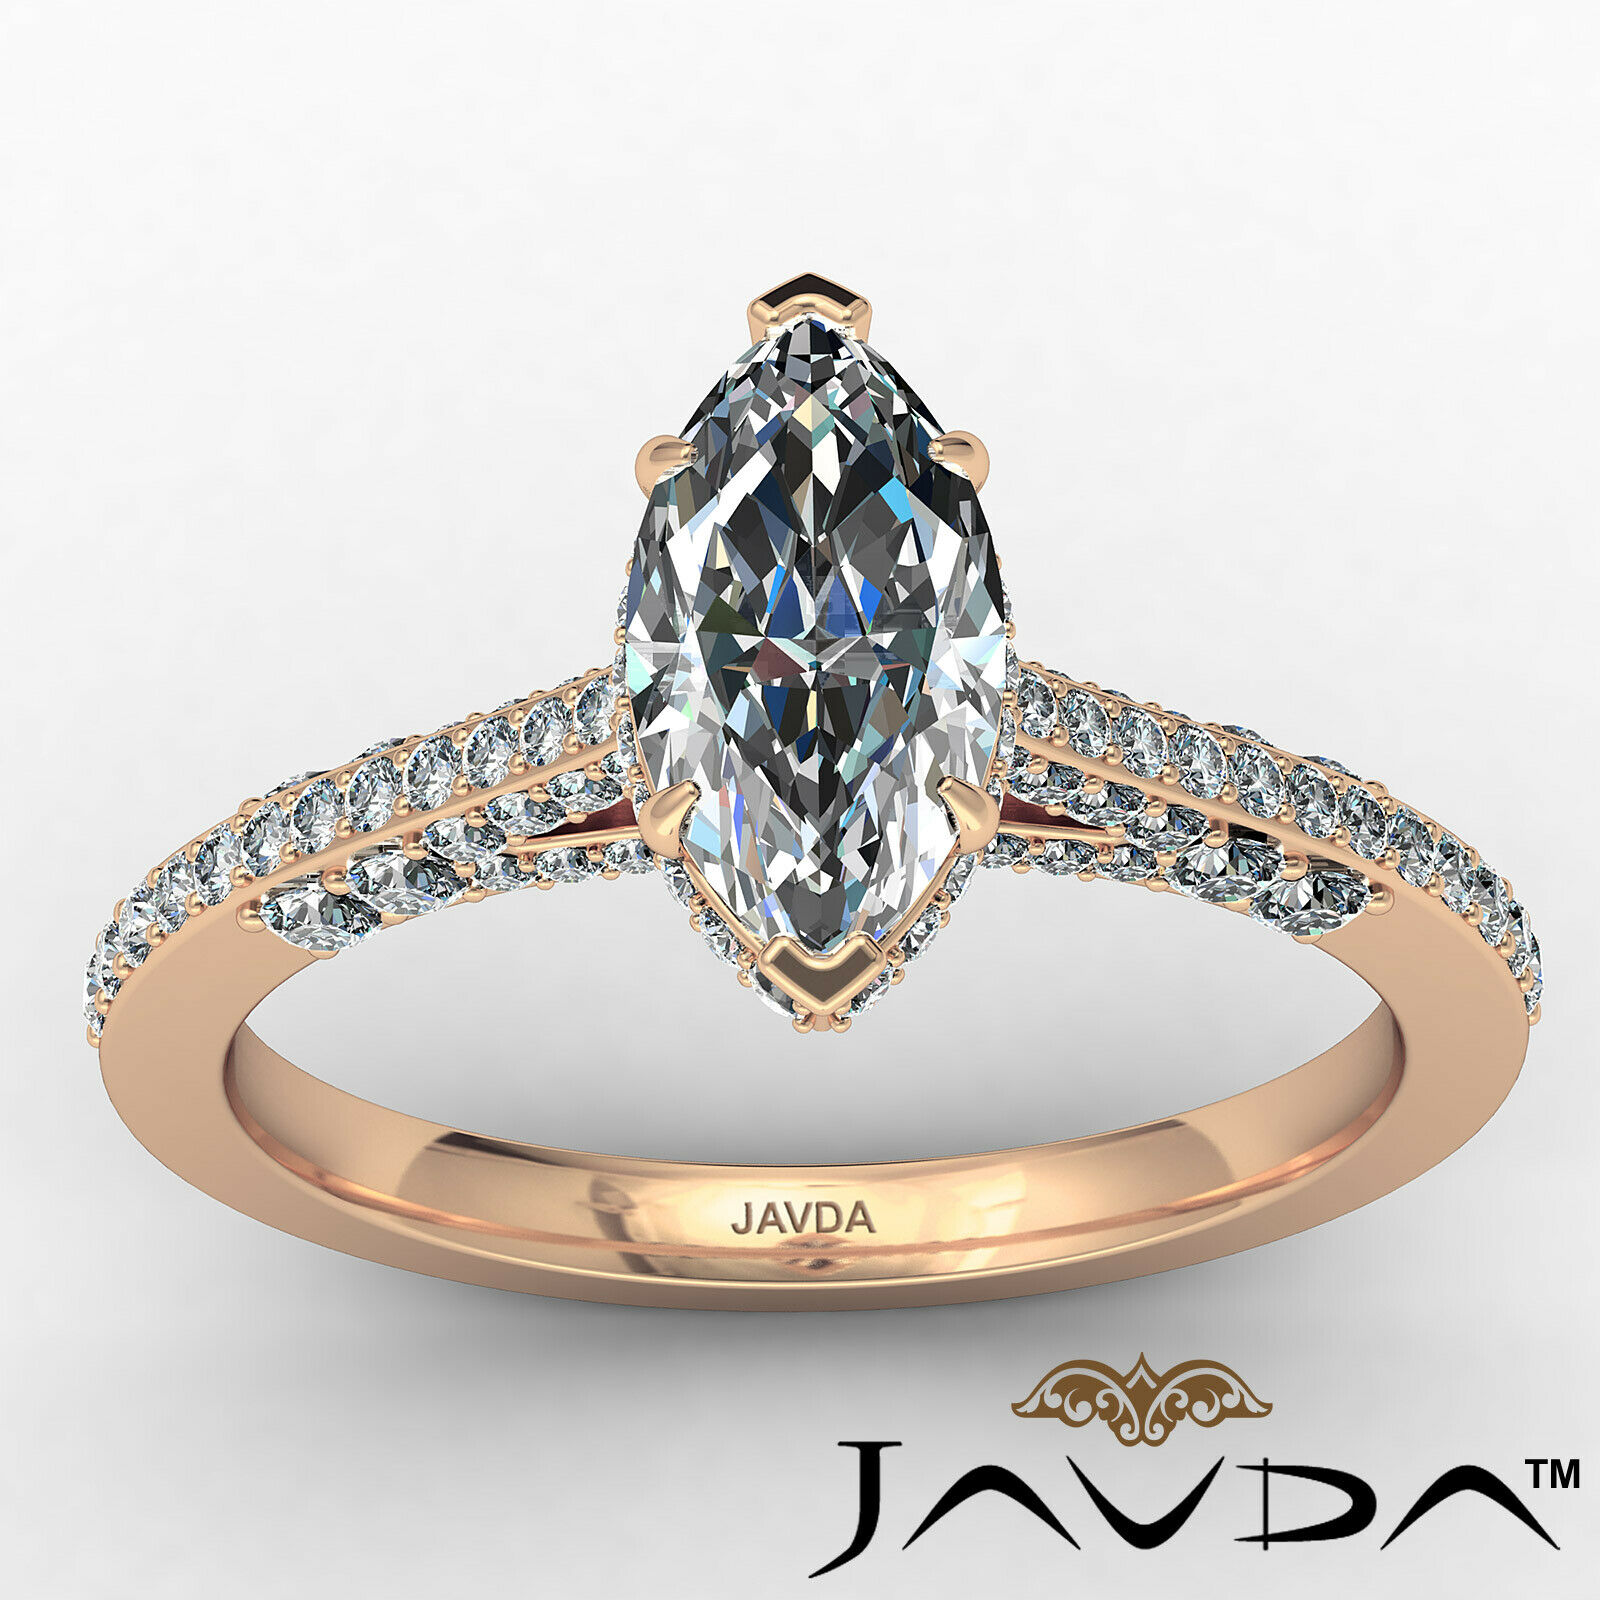 Circa Halo Marquise Diamond Engagement Ring GIA G Color & VVS2 clarity 1.1 ctw 11